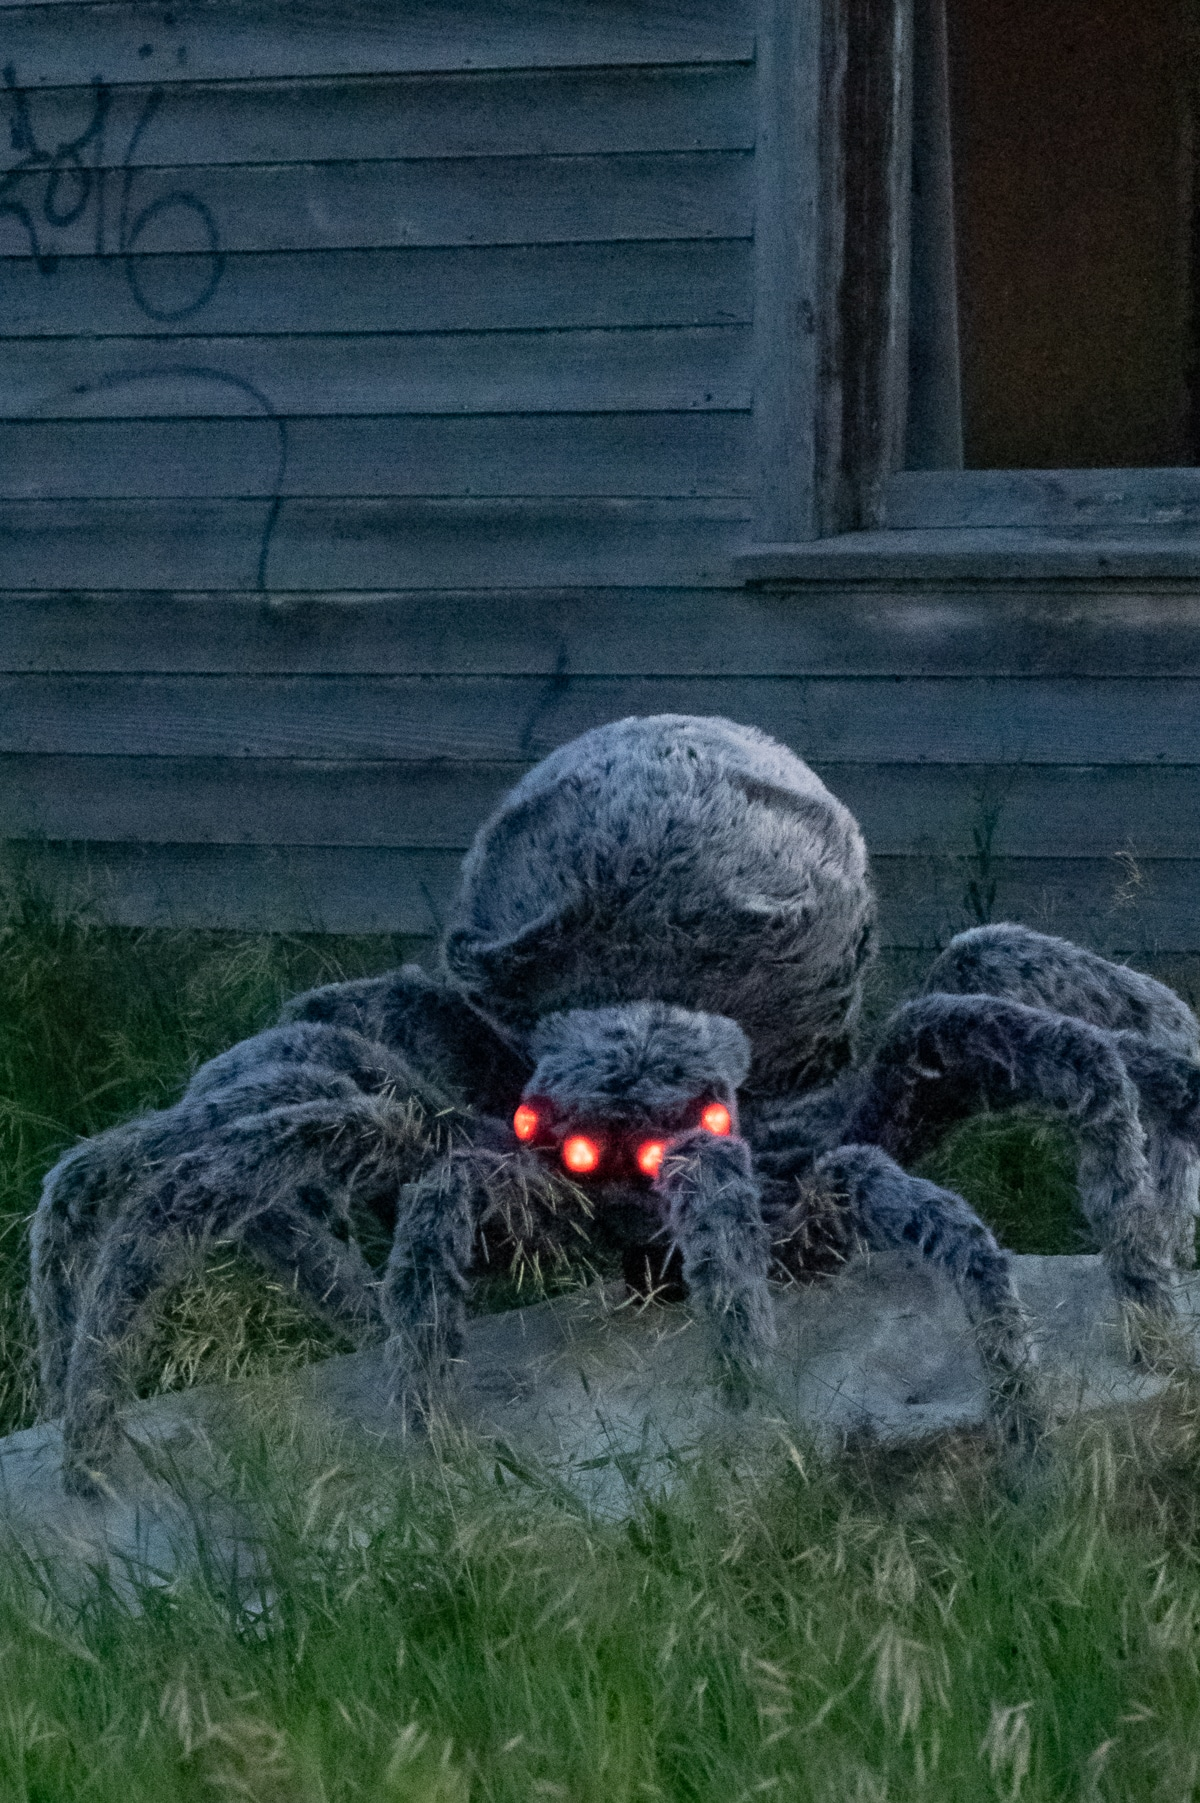 A giant spider with glowing eyes hanging out in front of a an old abandoned house at twilight.